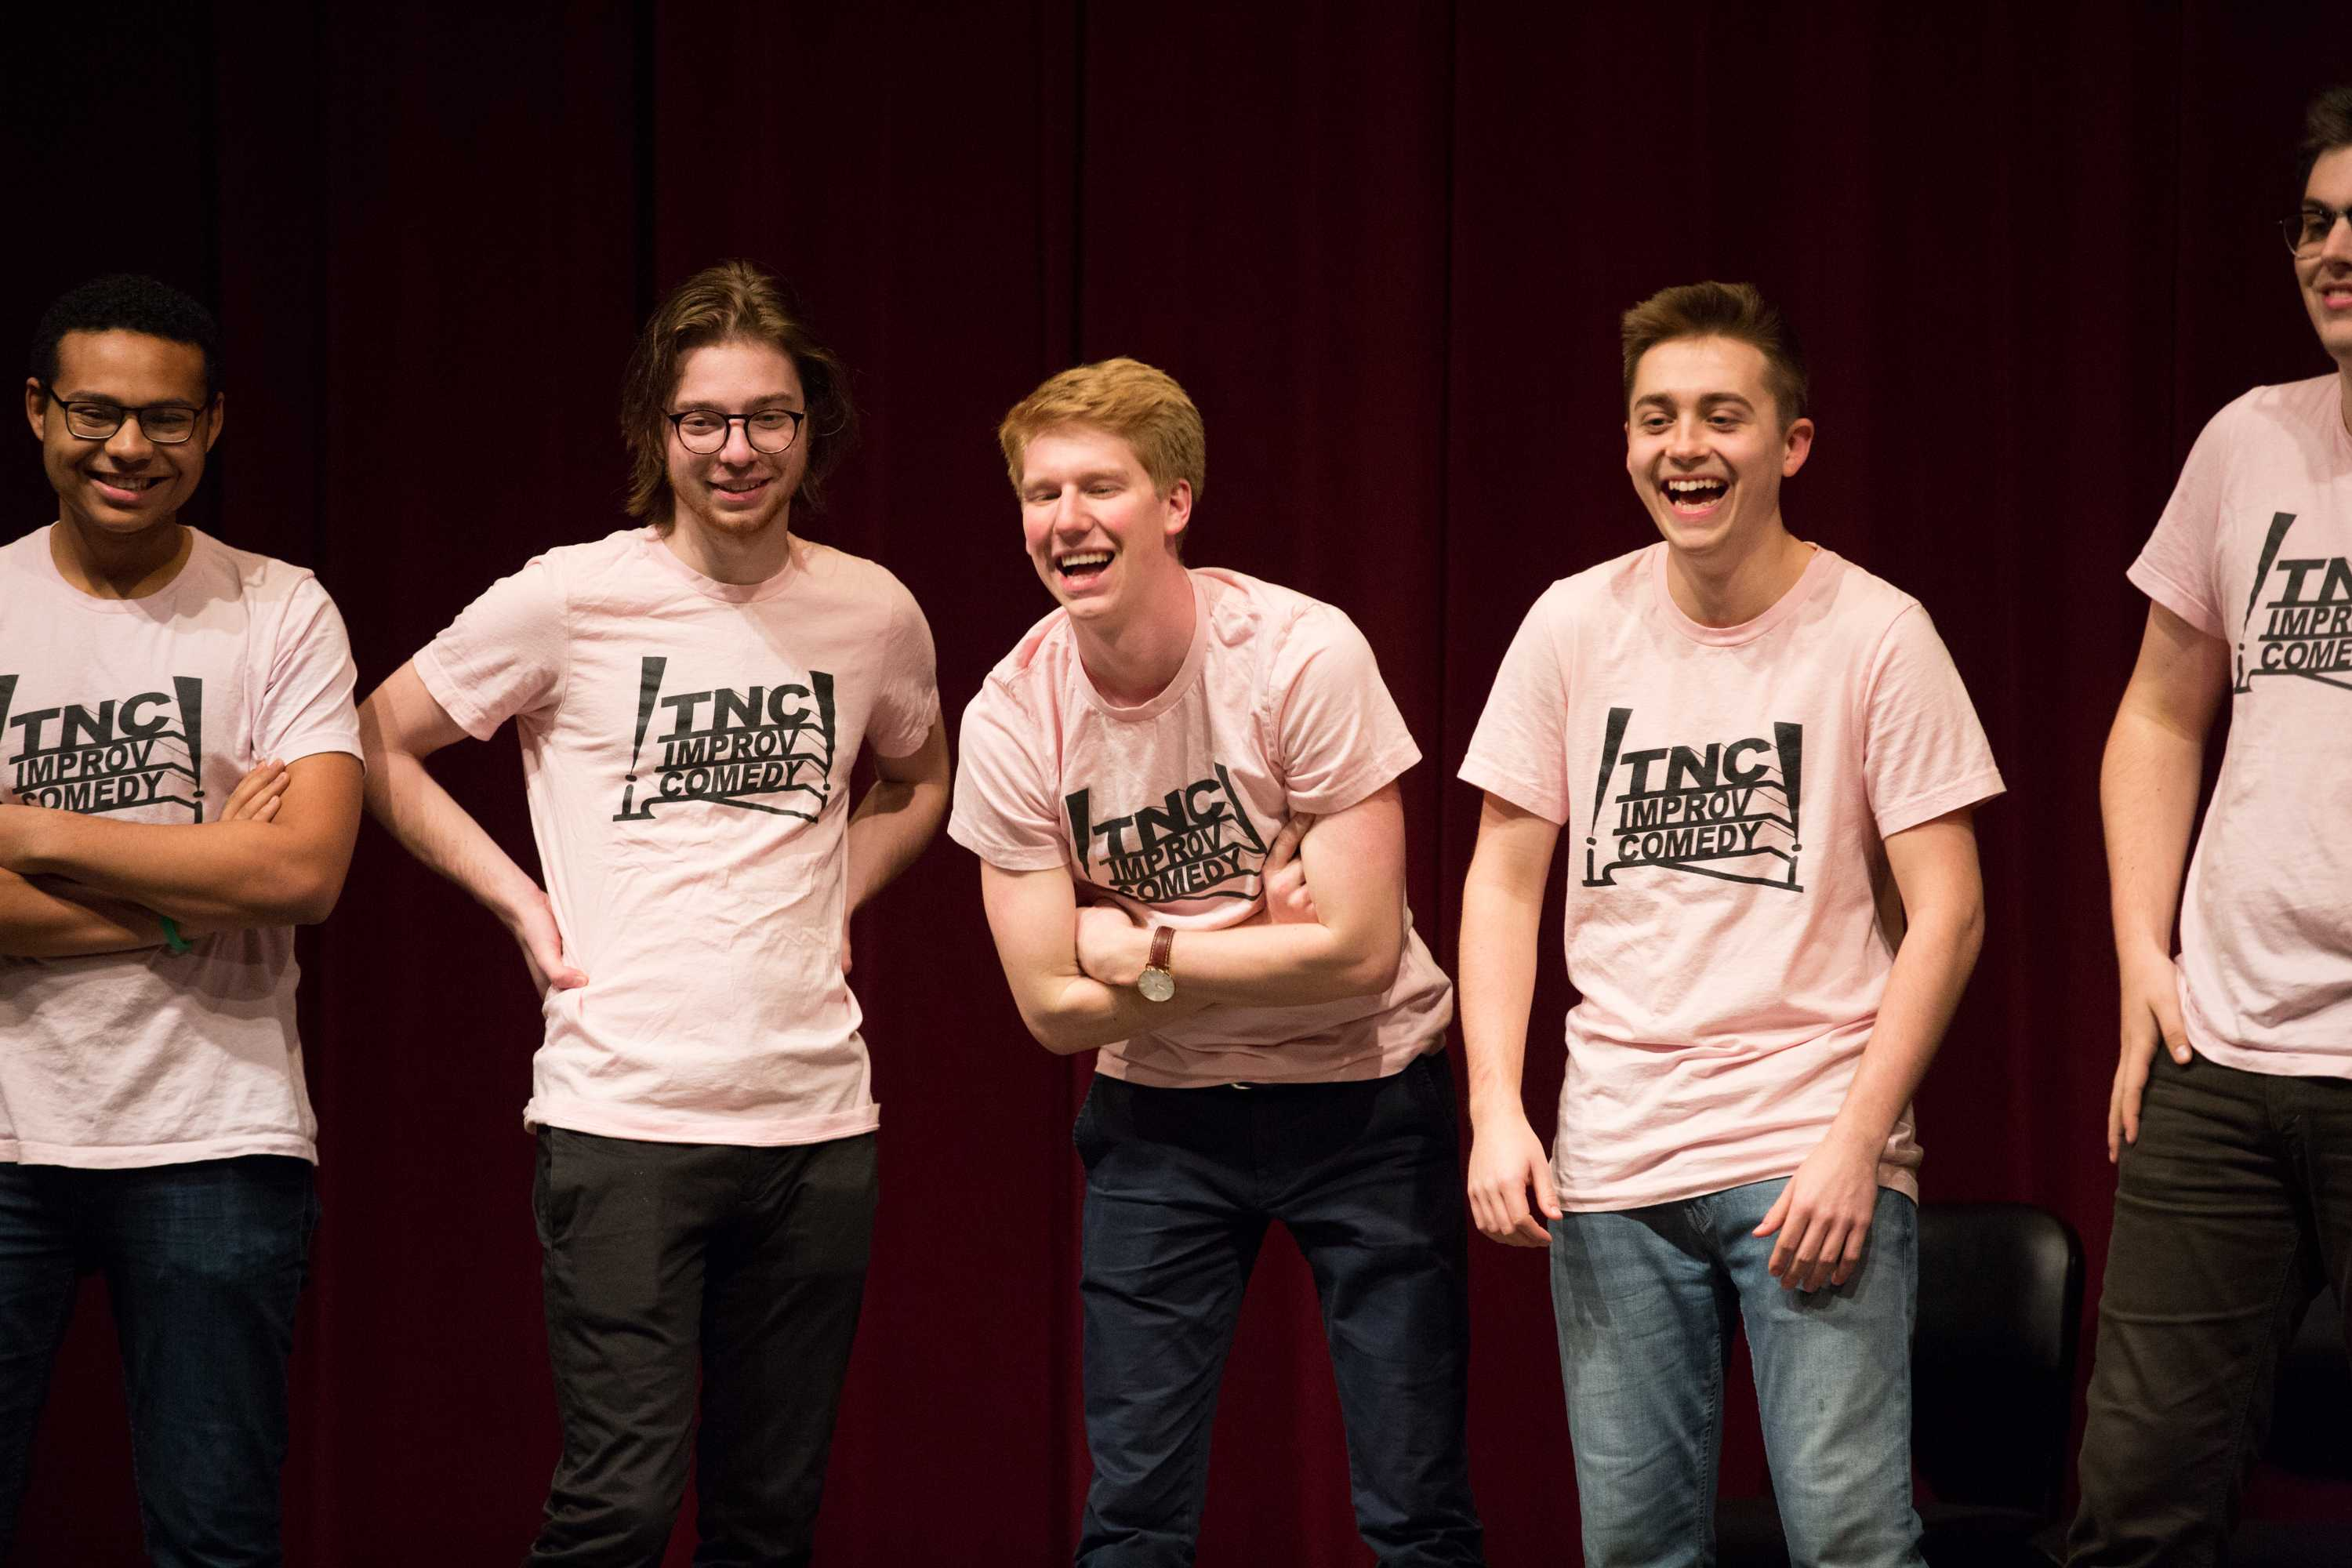 Vanderbilt's Tongue'N'Cheek performs at the VenUe's Comedy Gold event in Sarratt Cinema on Friday, February 9, 2018. (Claire Barnett)